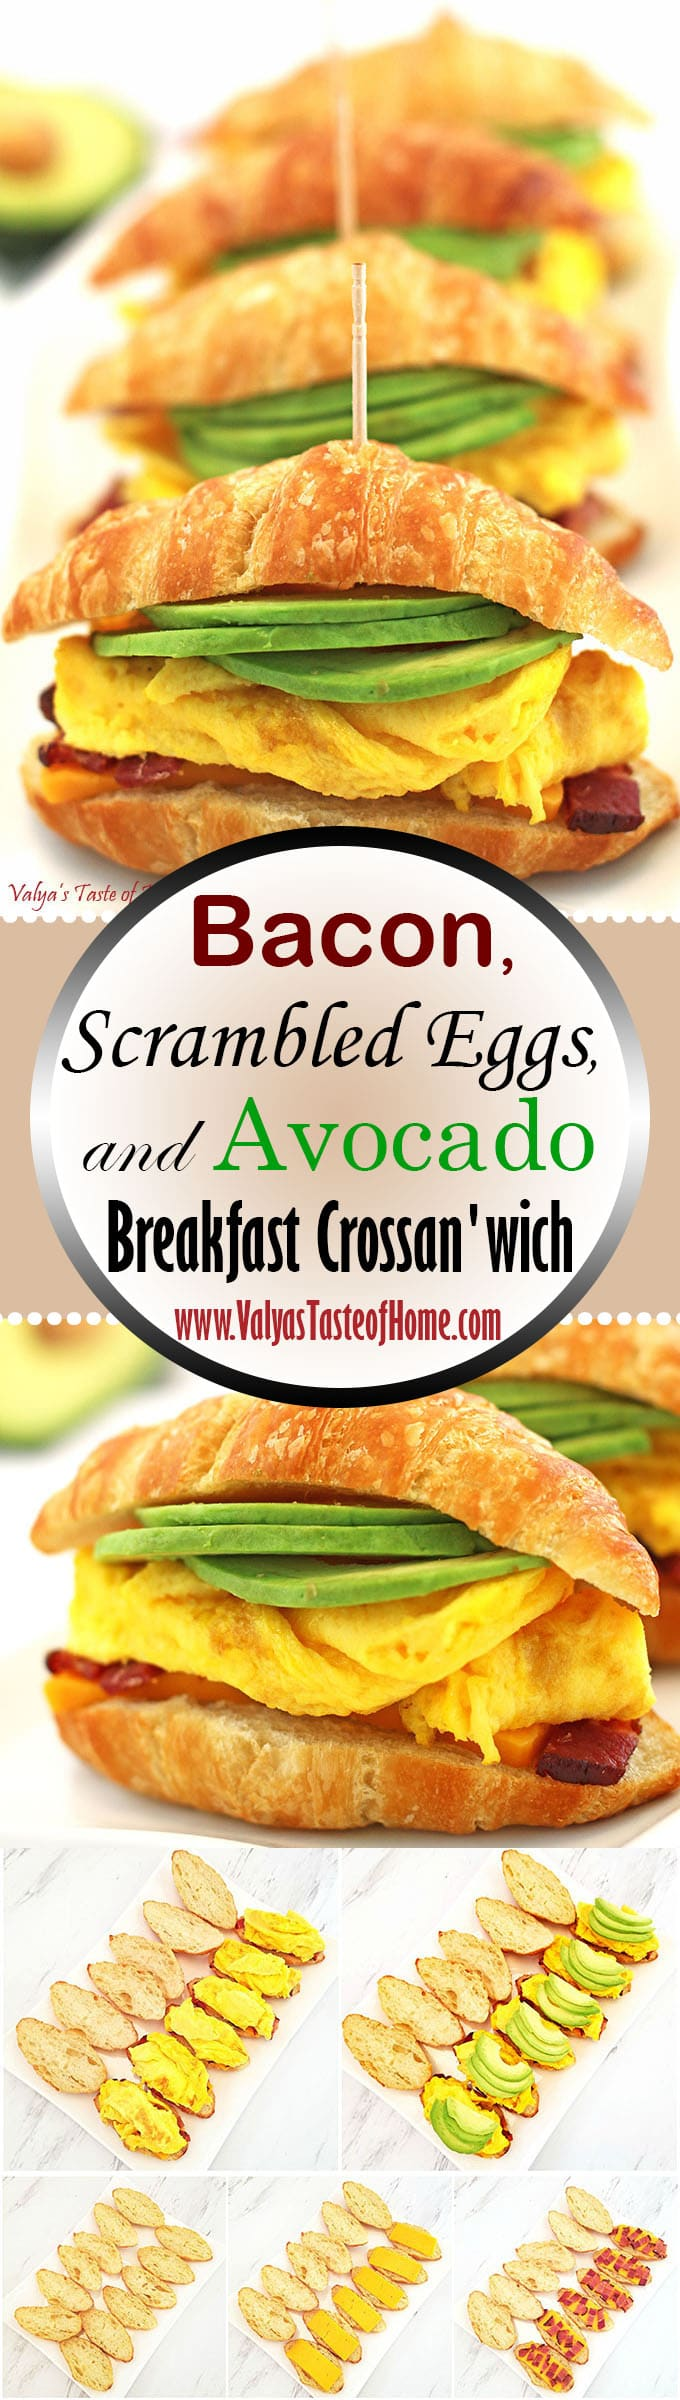 avocado, bacon, Breakfast, crossan'wich with cheese, crossandwich, easy breakfast, eggs, food, kids approved breakfast, kids love it, make ahead breakfast, recipe, Scrambled Eggs and Avocado, so good, The Best Breakfast Crossan'wich with Bacon